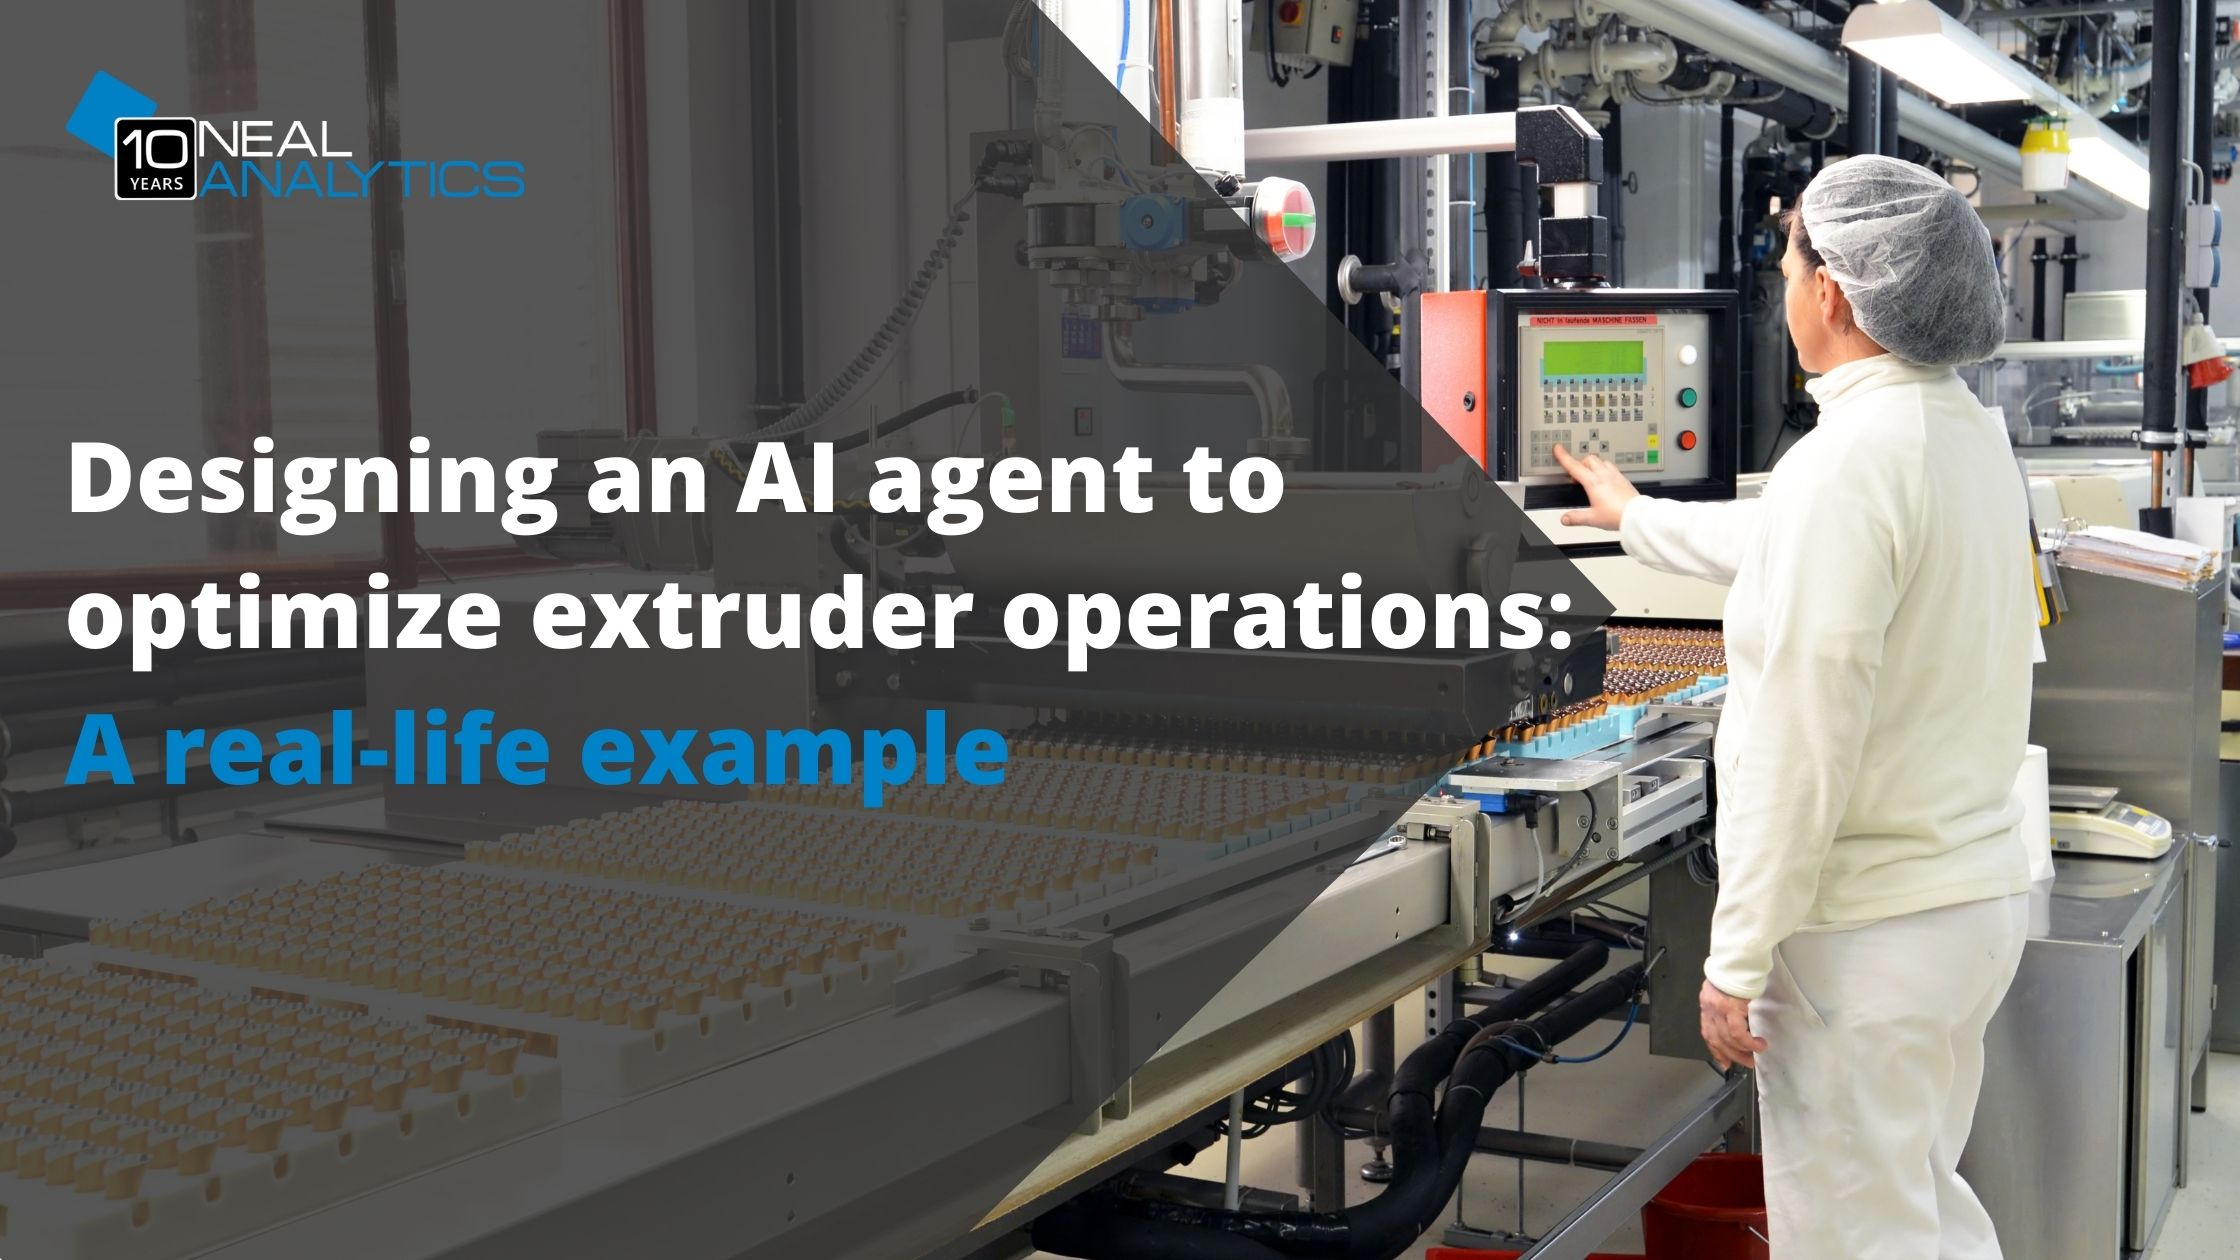 Designing an AI agent to optimize extruder operations: A real-life example